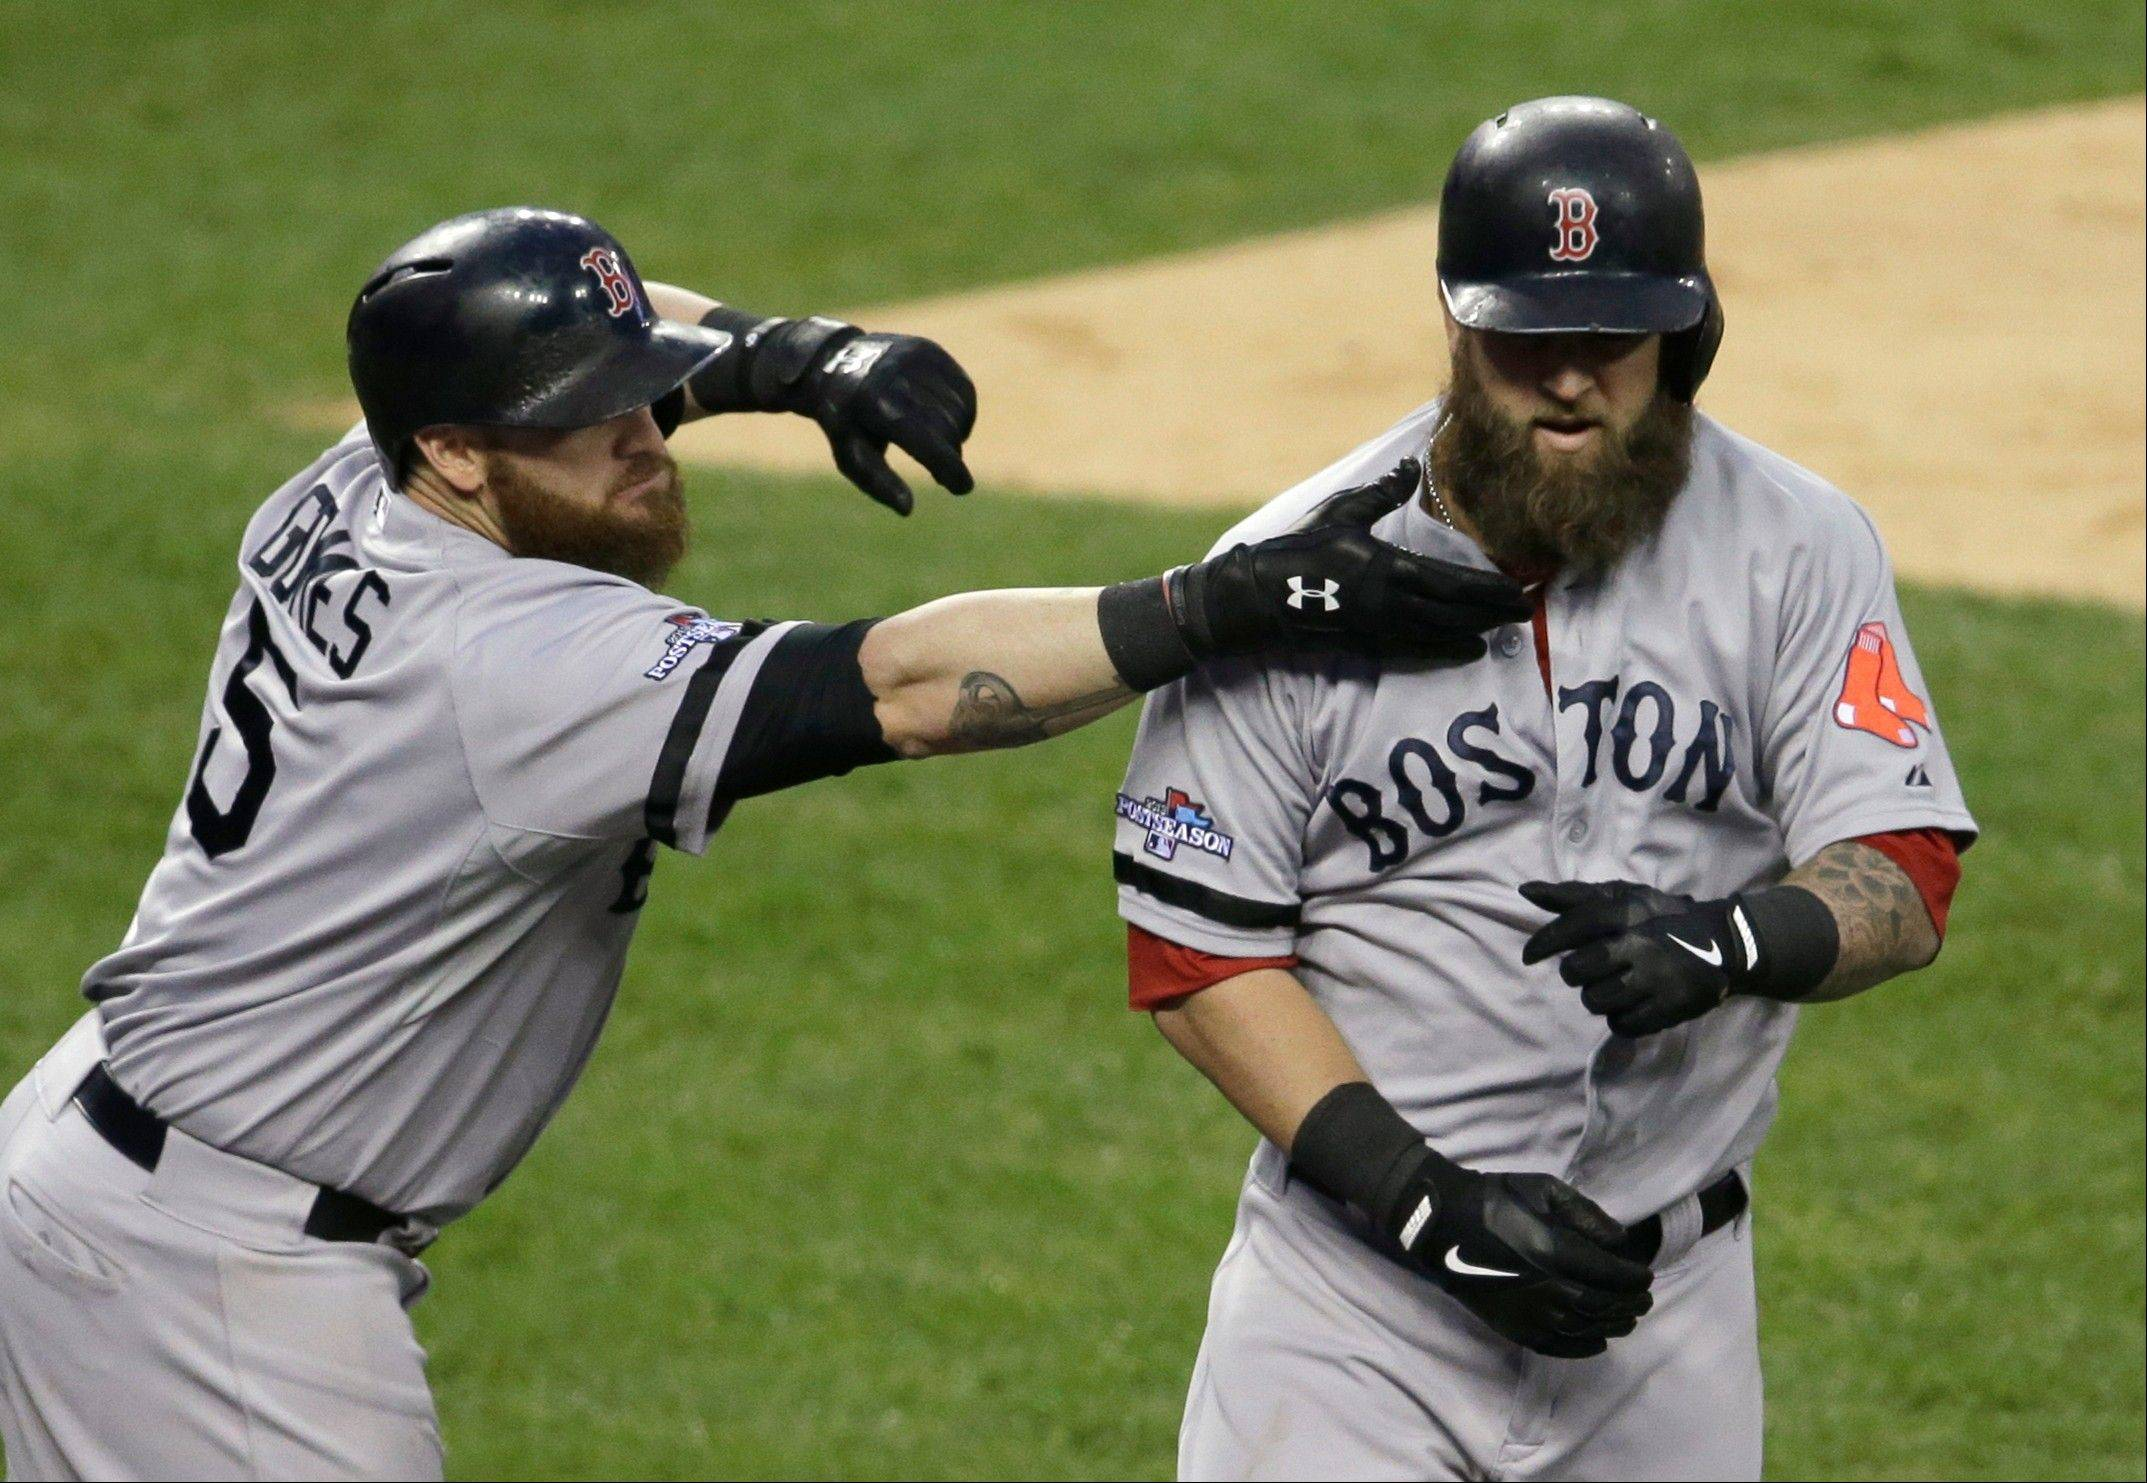 Boston's Jonny Gomes reaches to pull the beard of Mike Napoli after Napoli hits a home run in the seventh inning during Game 3 of the American League Championship Series Tuesday in Detroit.